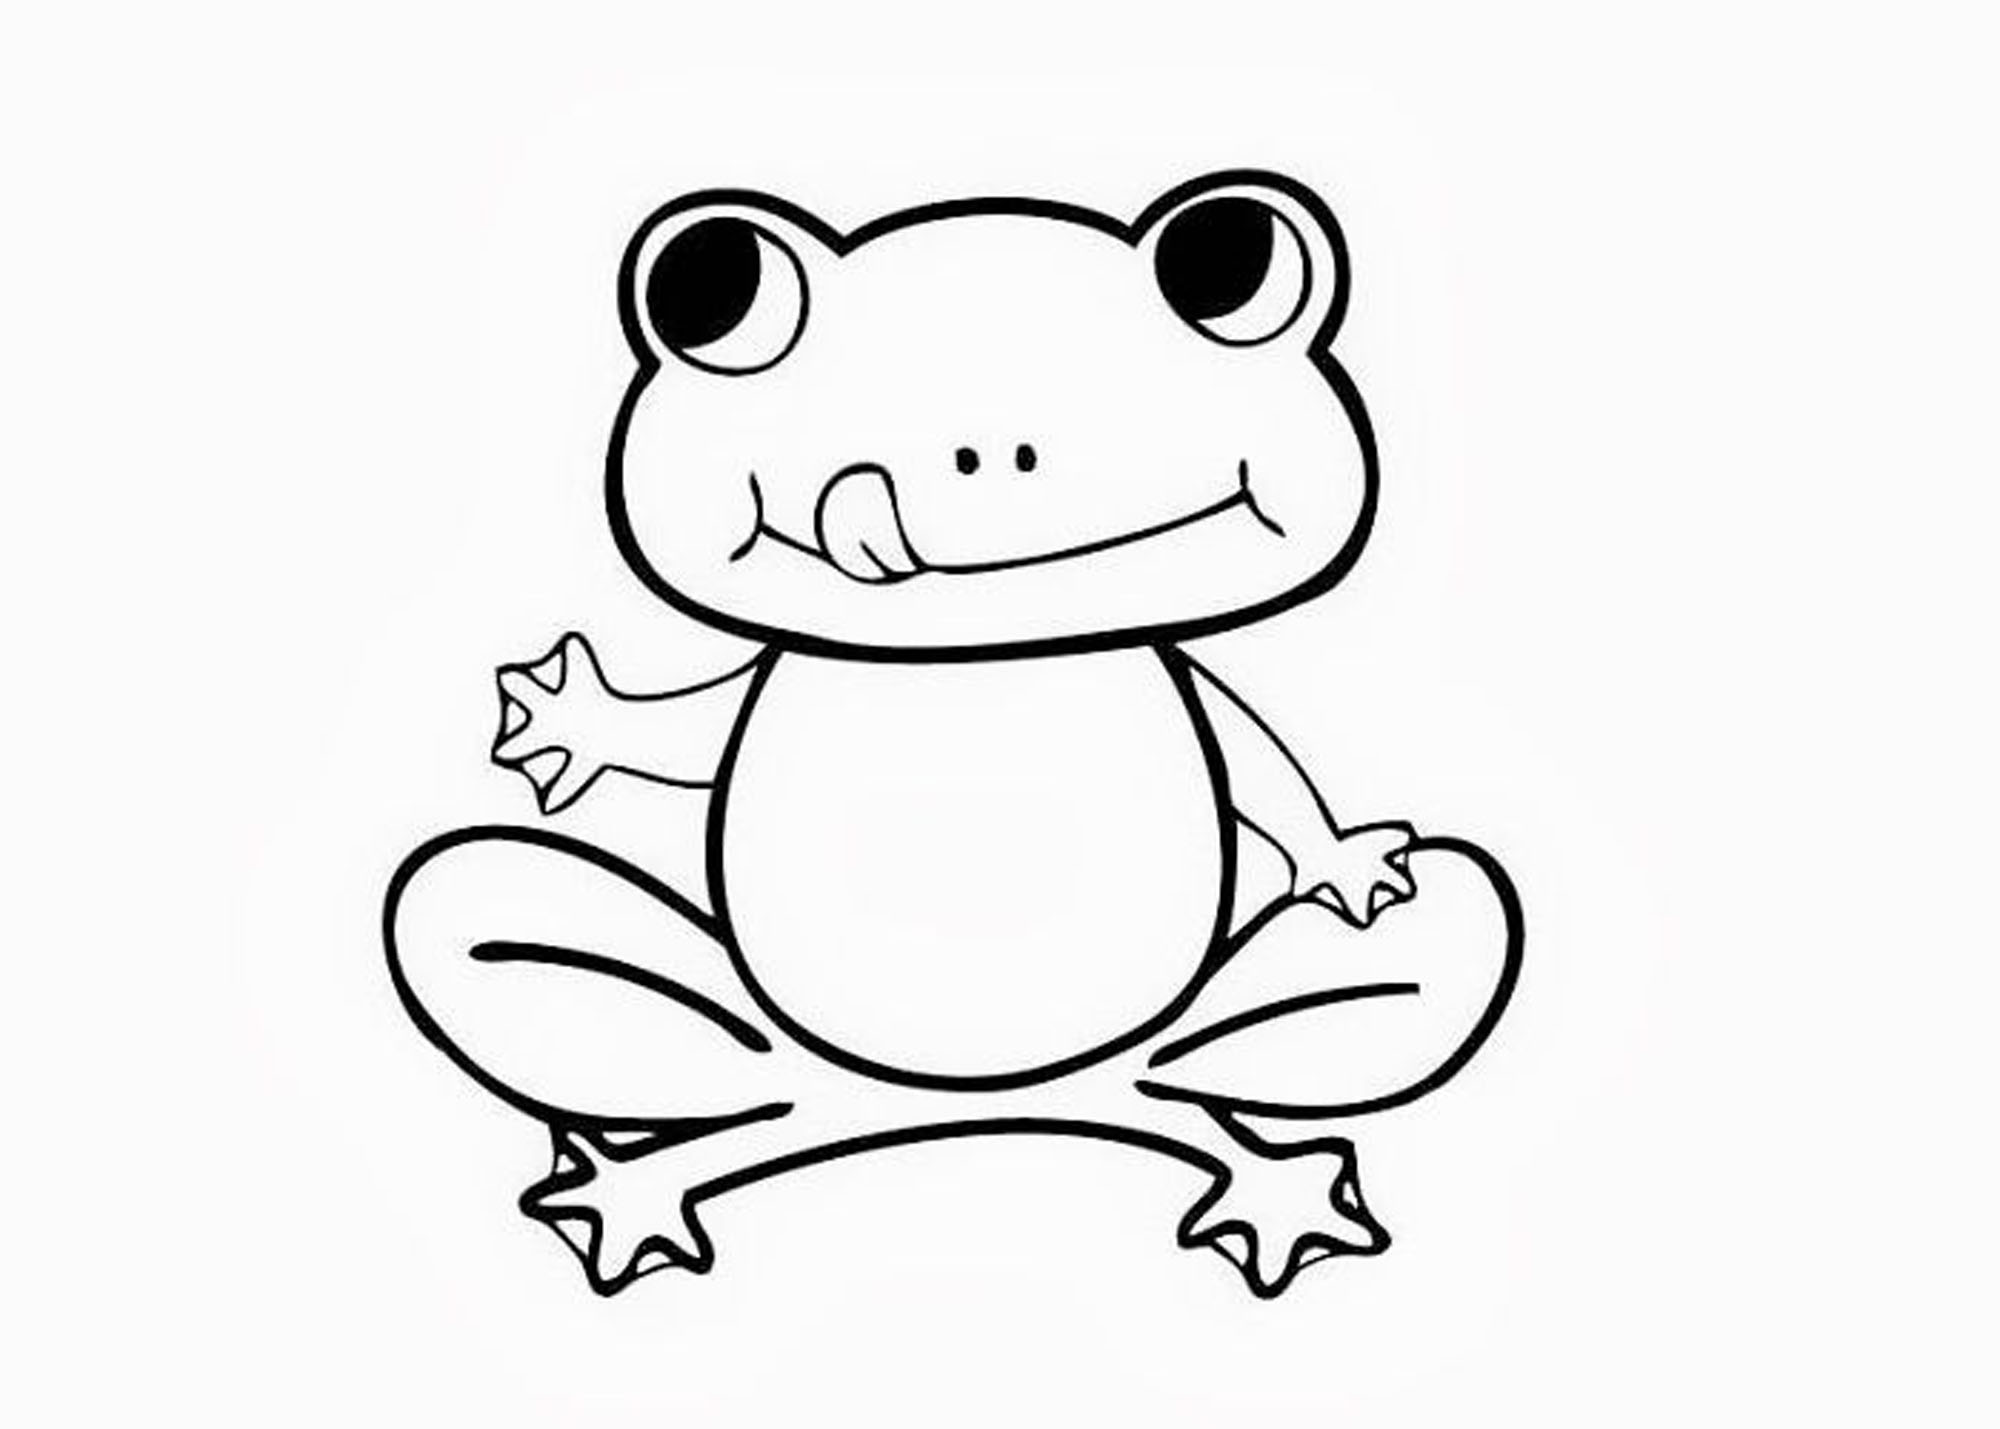 frogs to color for free print download frog coloring pages theme for kids free color to for frogs